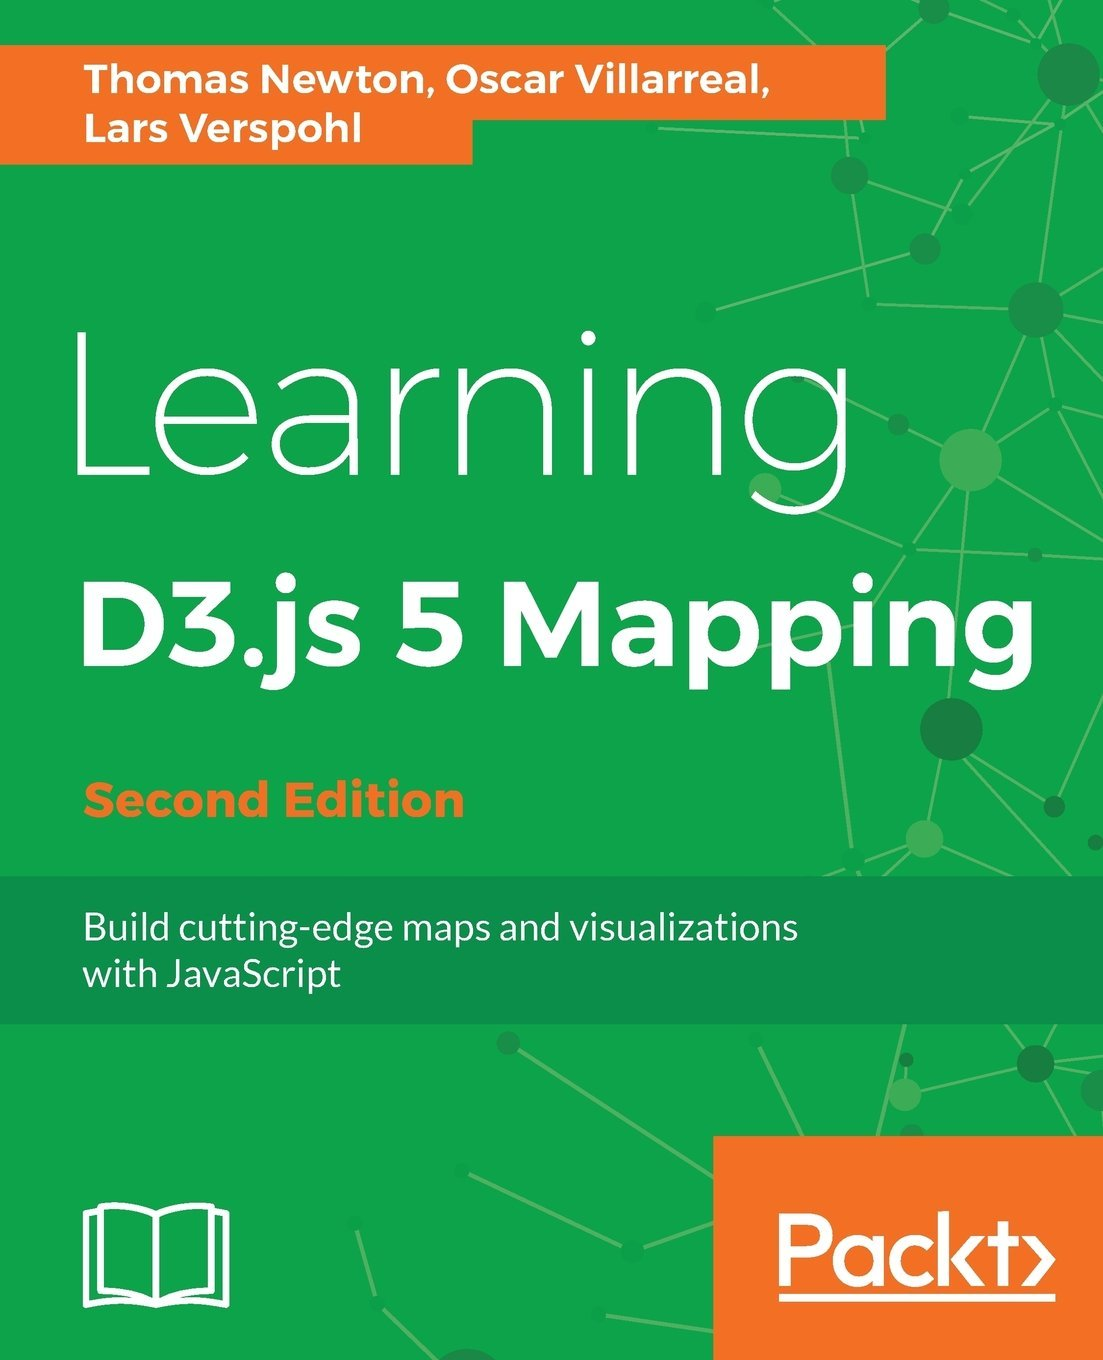 Learning D3.js 5 Mapping - Second Edition: Build cutting-edge maps and visualizations with JavaScript